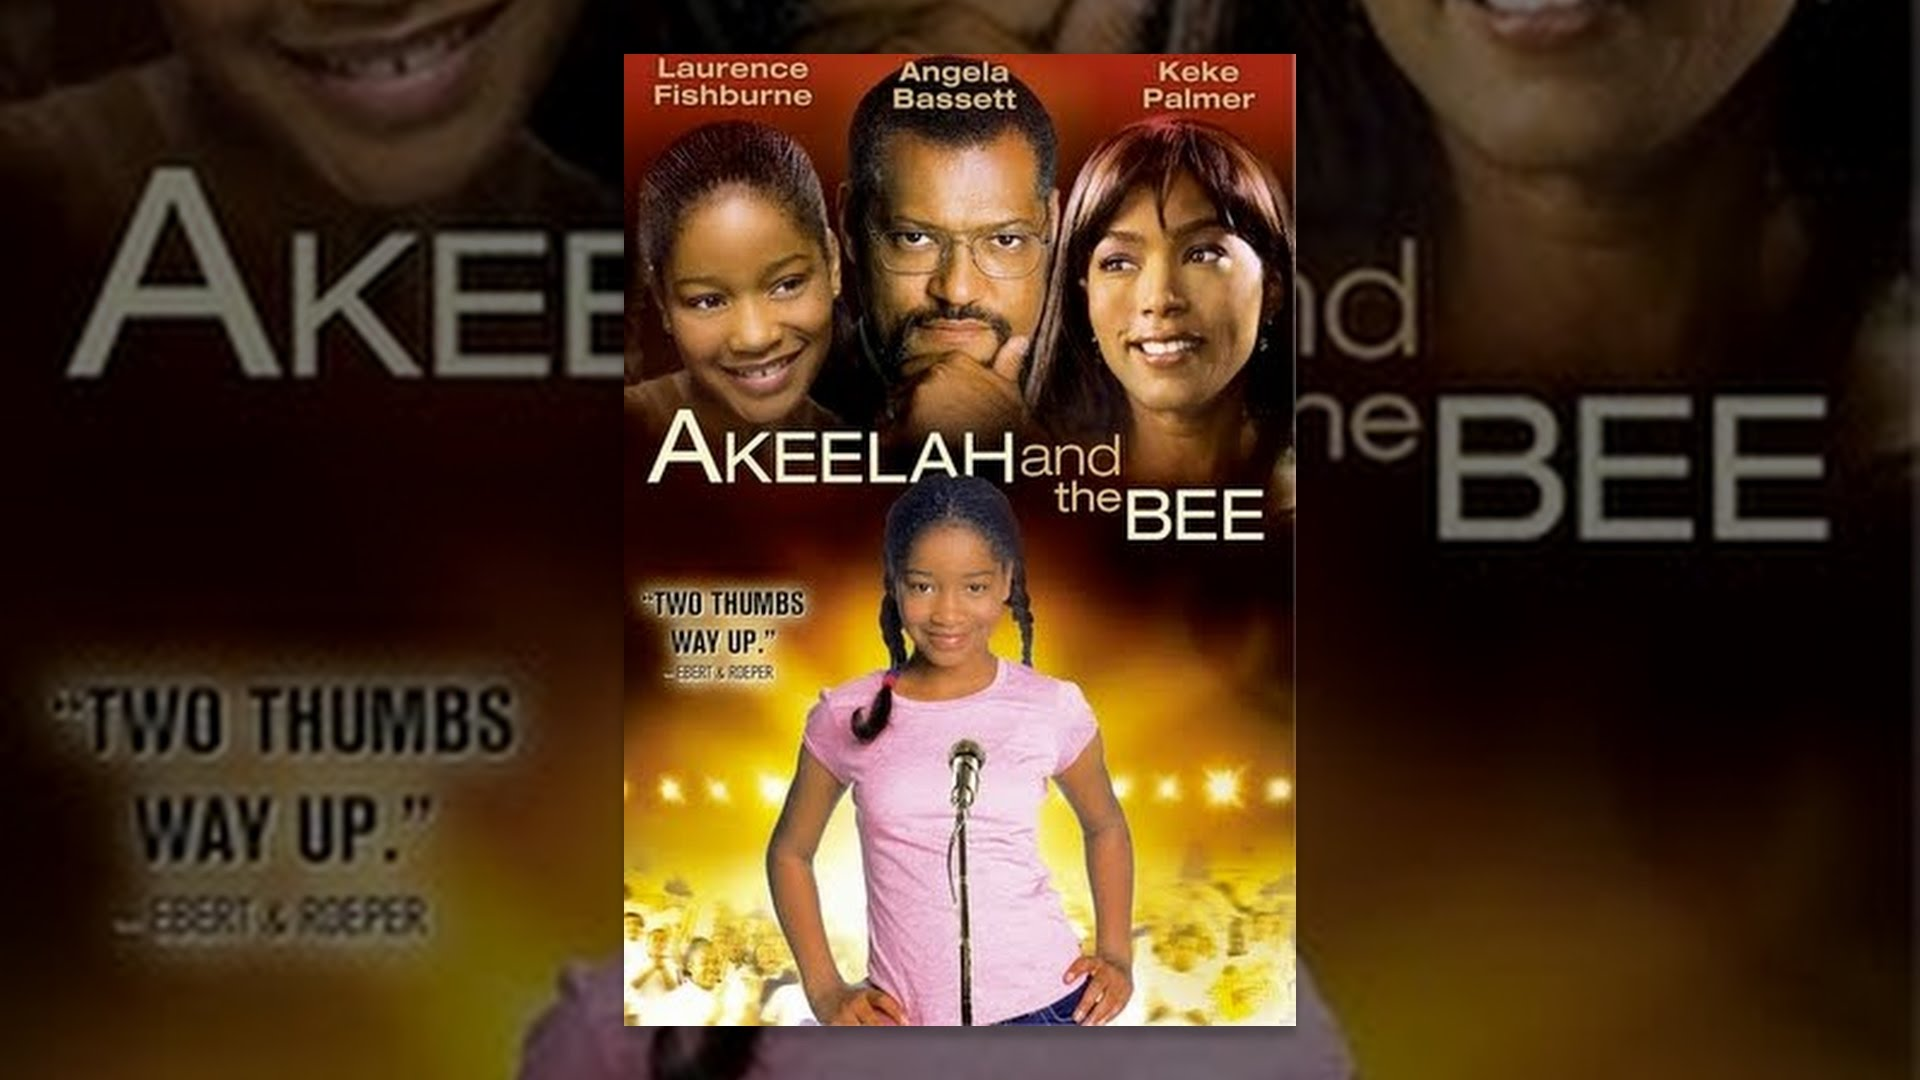 Download Akeelah and the Bee